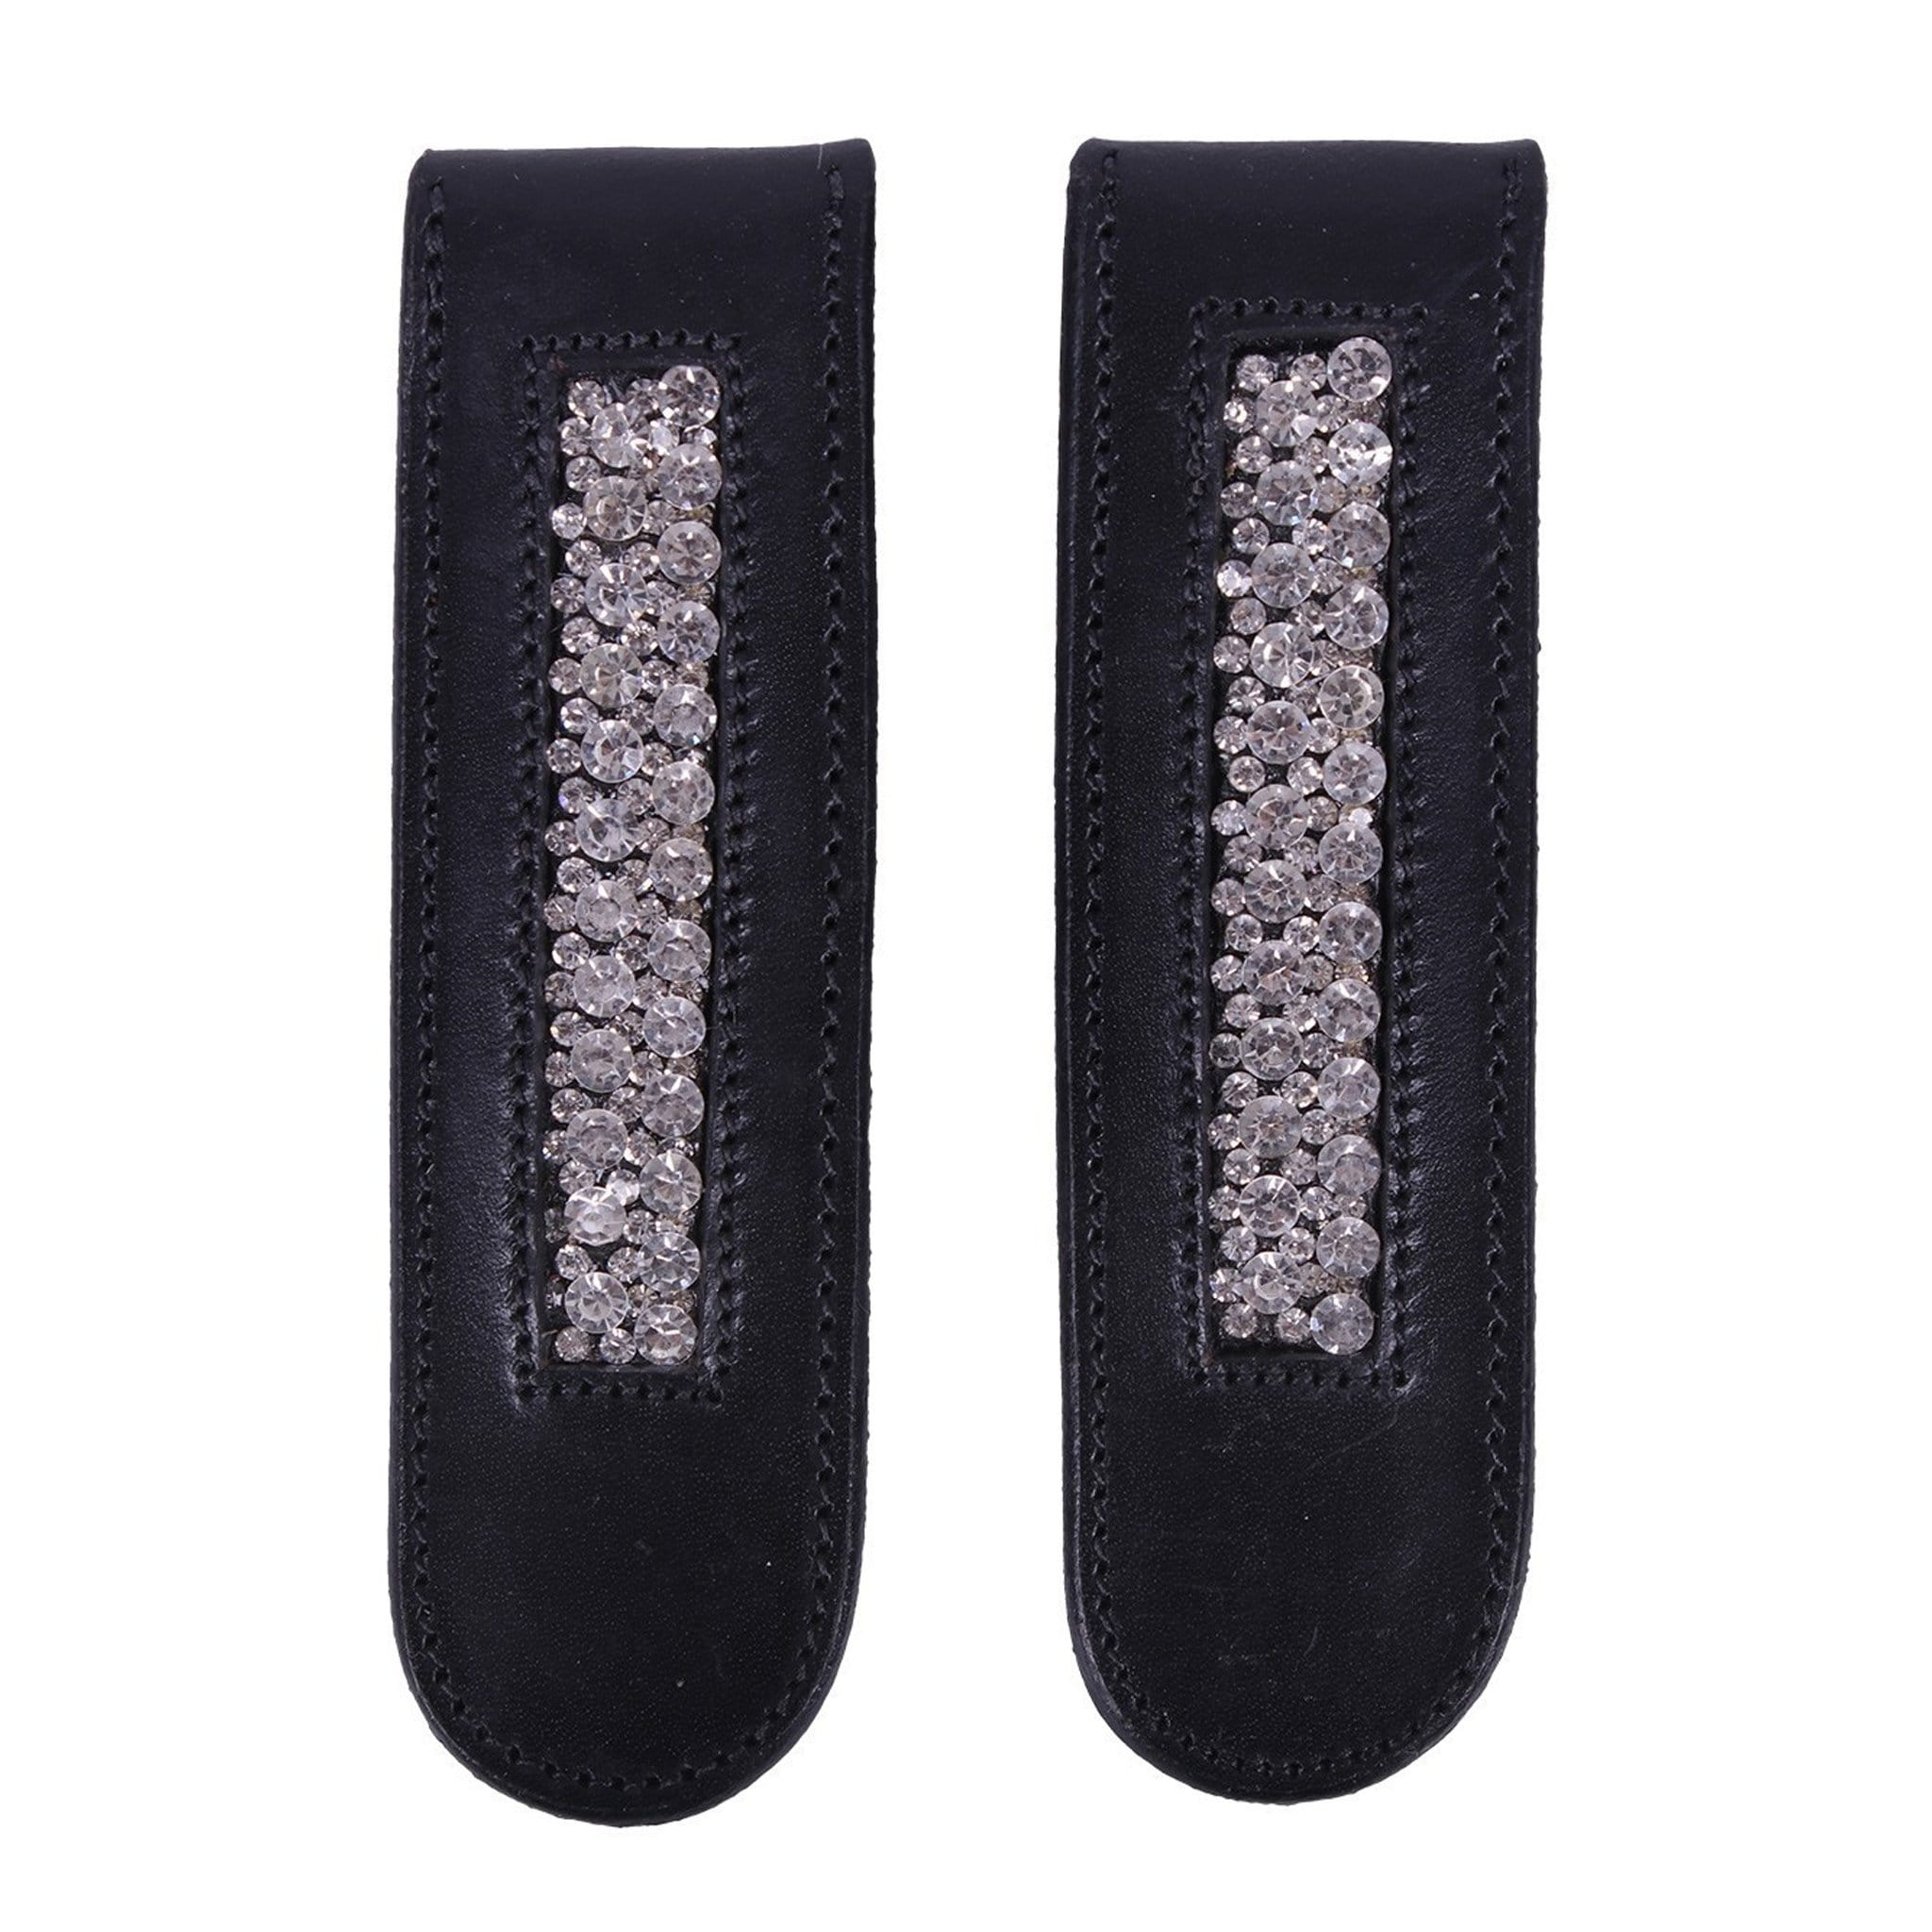 QHP Verbena Boot Clip 7211 Black Pair